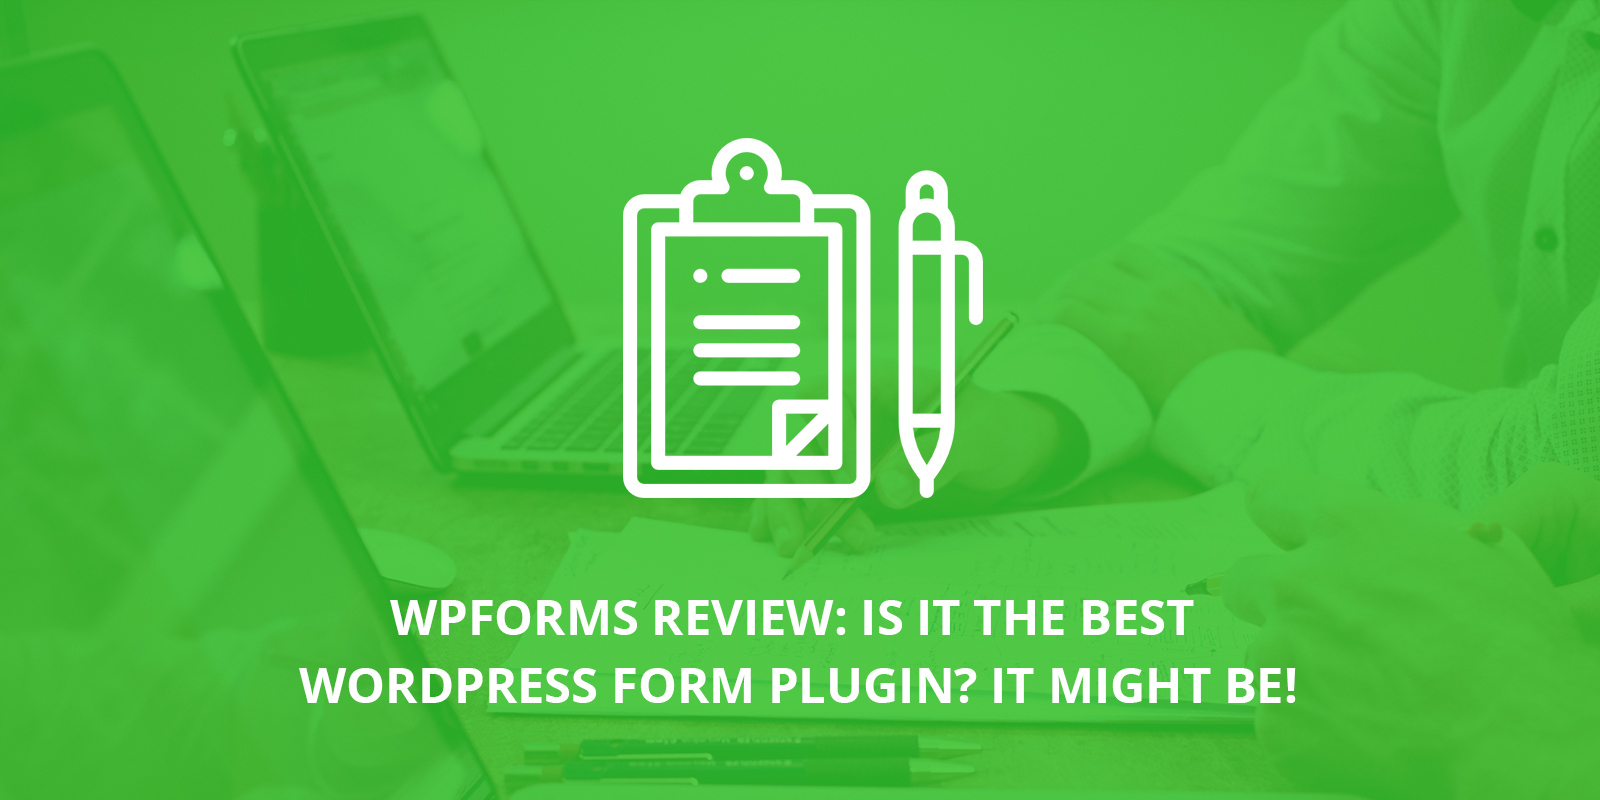 WPForms Review: Is It The Best WordPress Form Plugin? Find